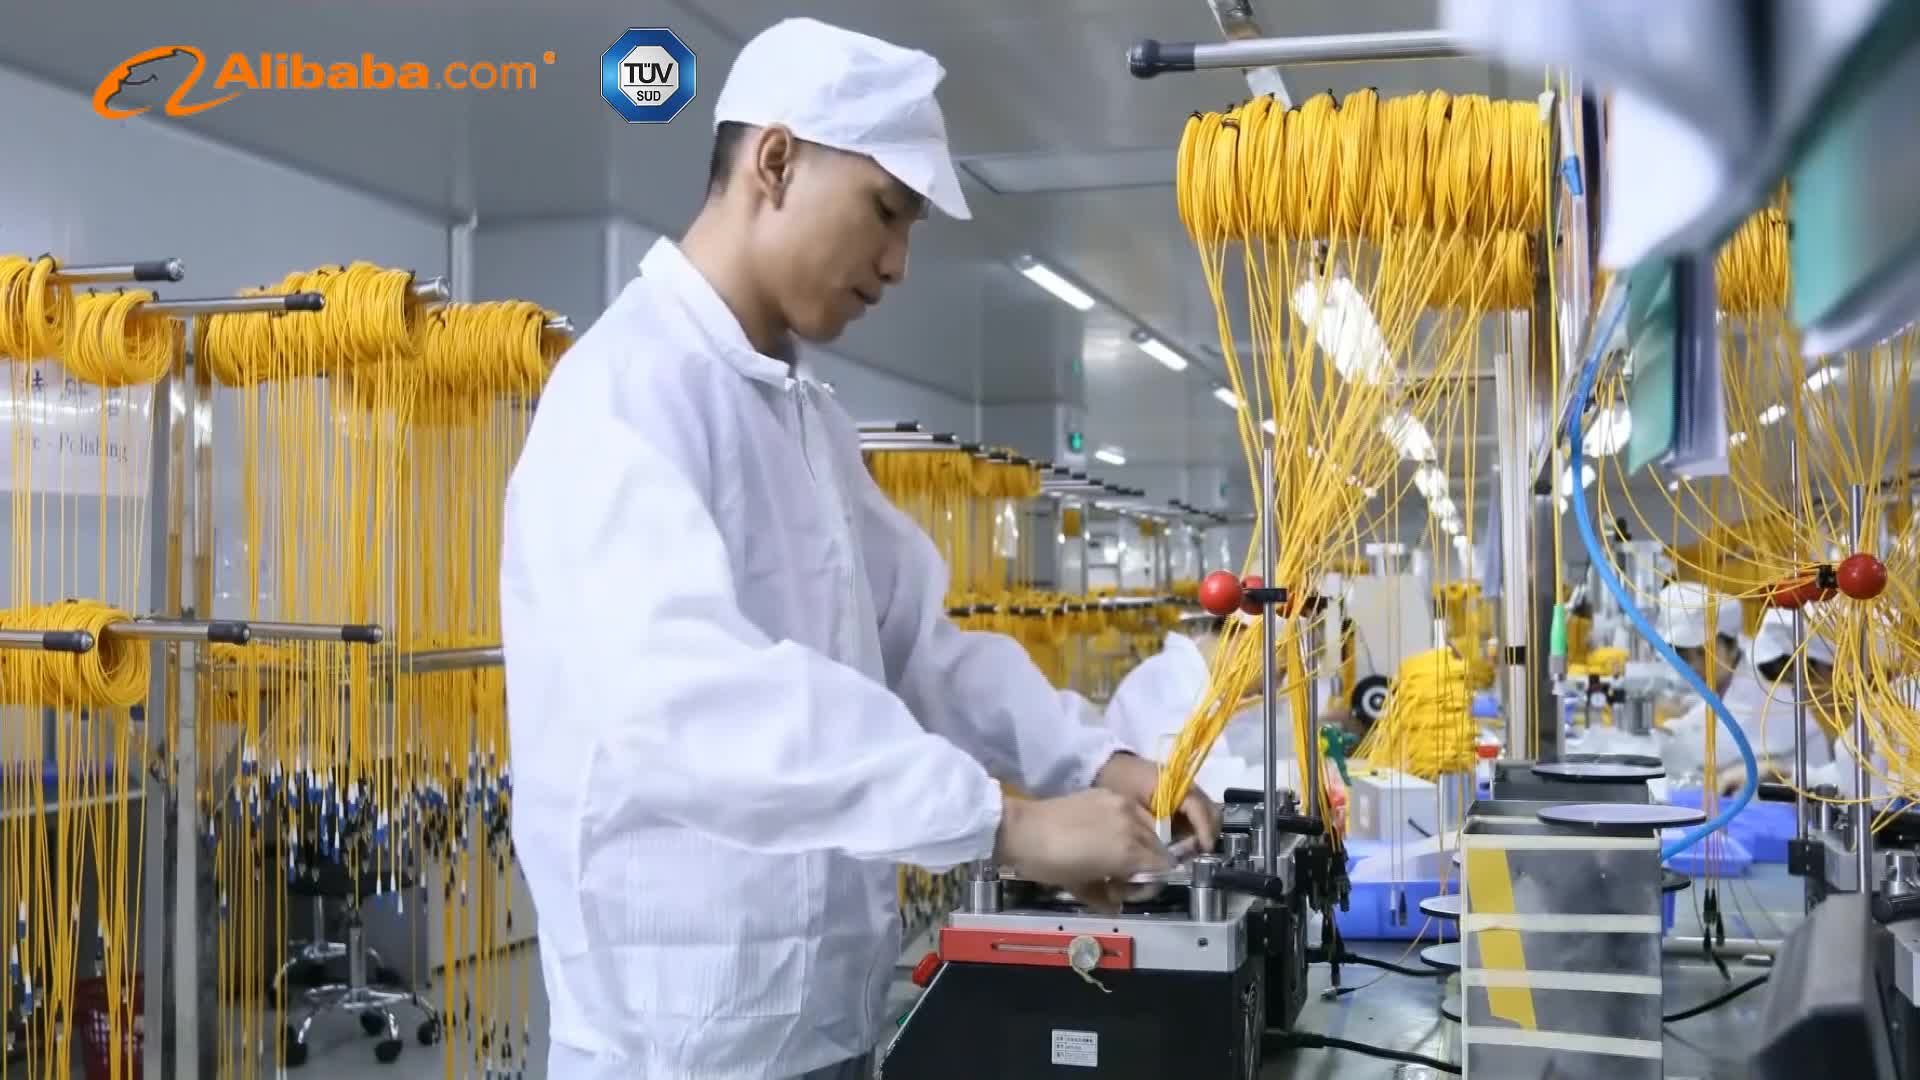 Business Contract Fc To St Patch Cable St Connector Patch Cord Patch Cord De Fibra Optica St/Lc